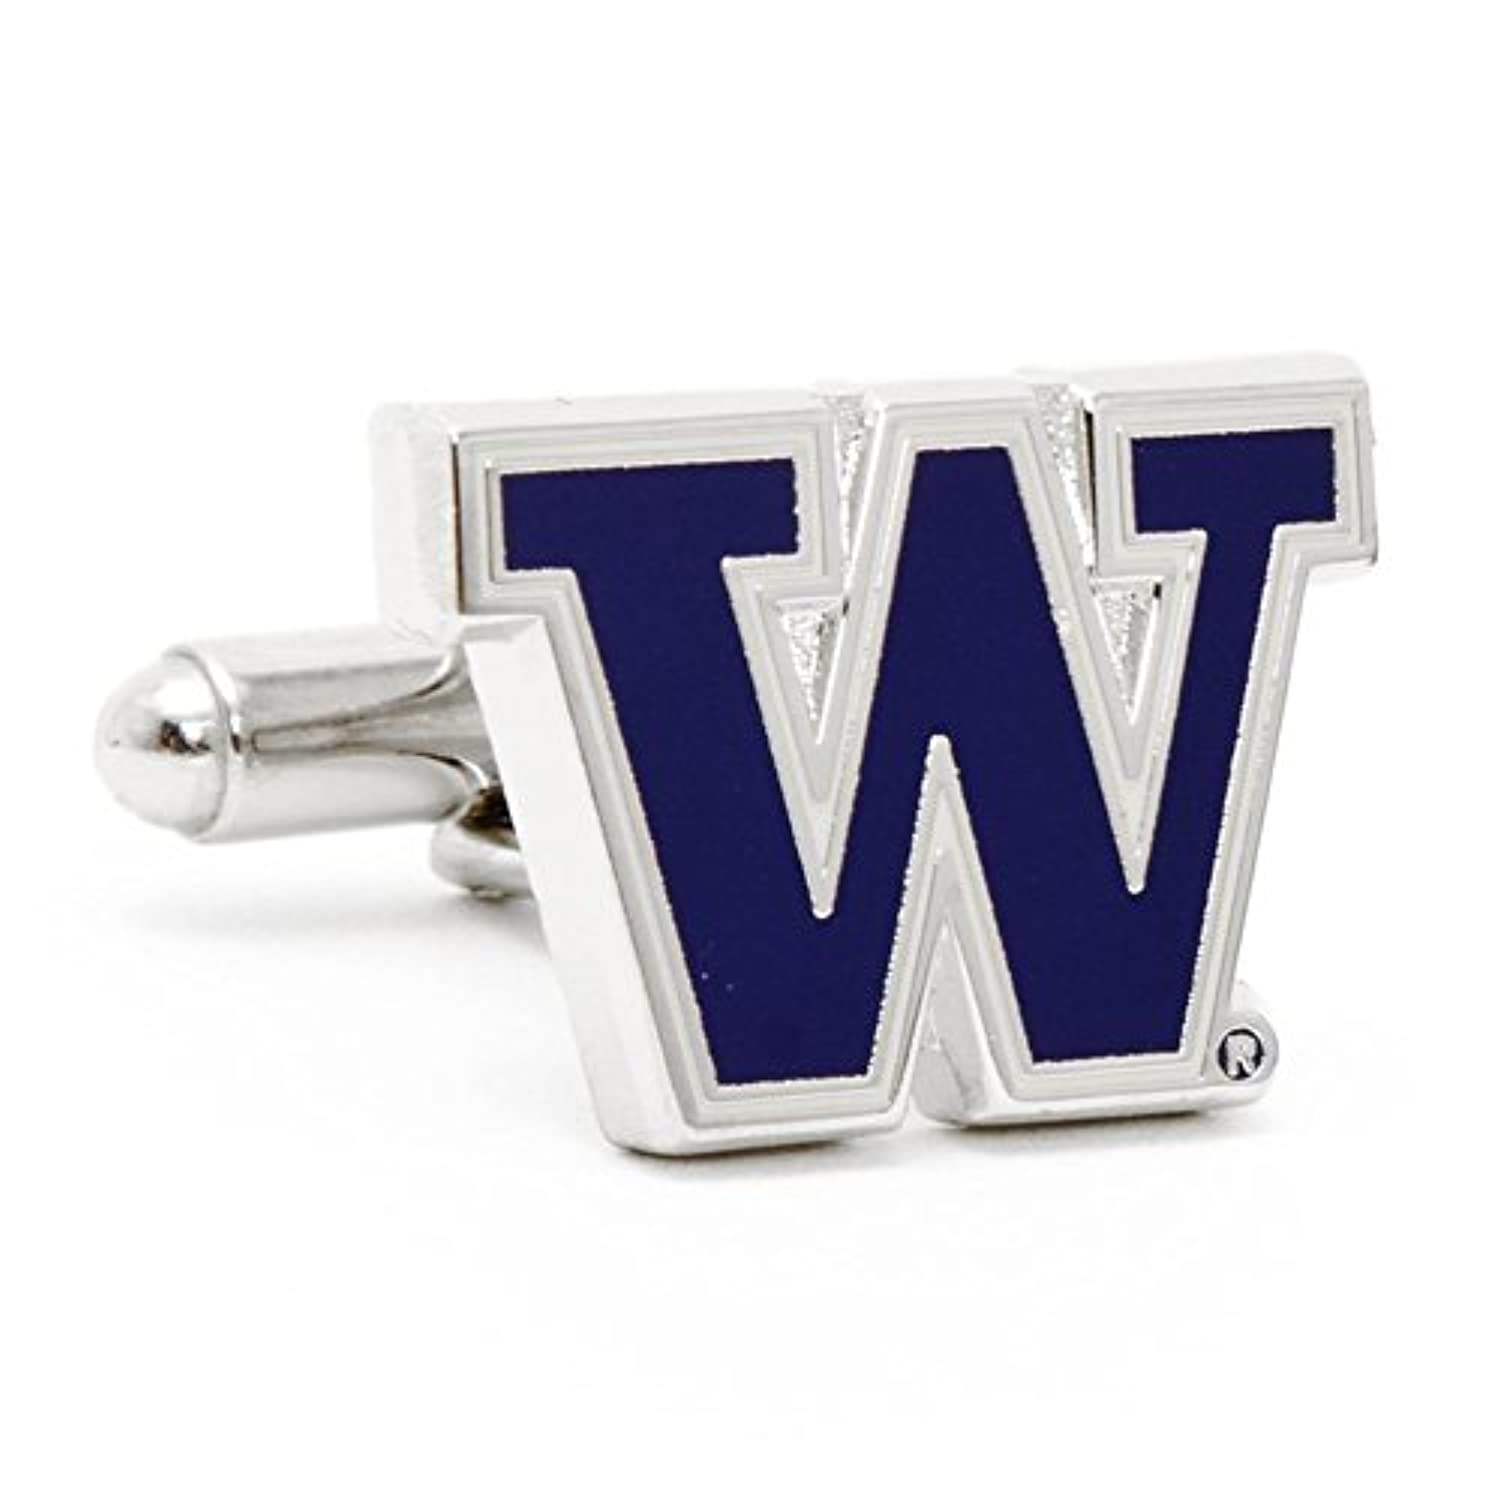 University of Washington Huskies Cufflinks with新しいCollectibleギフトボックス